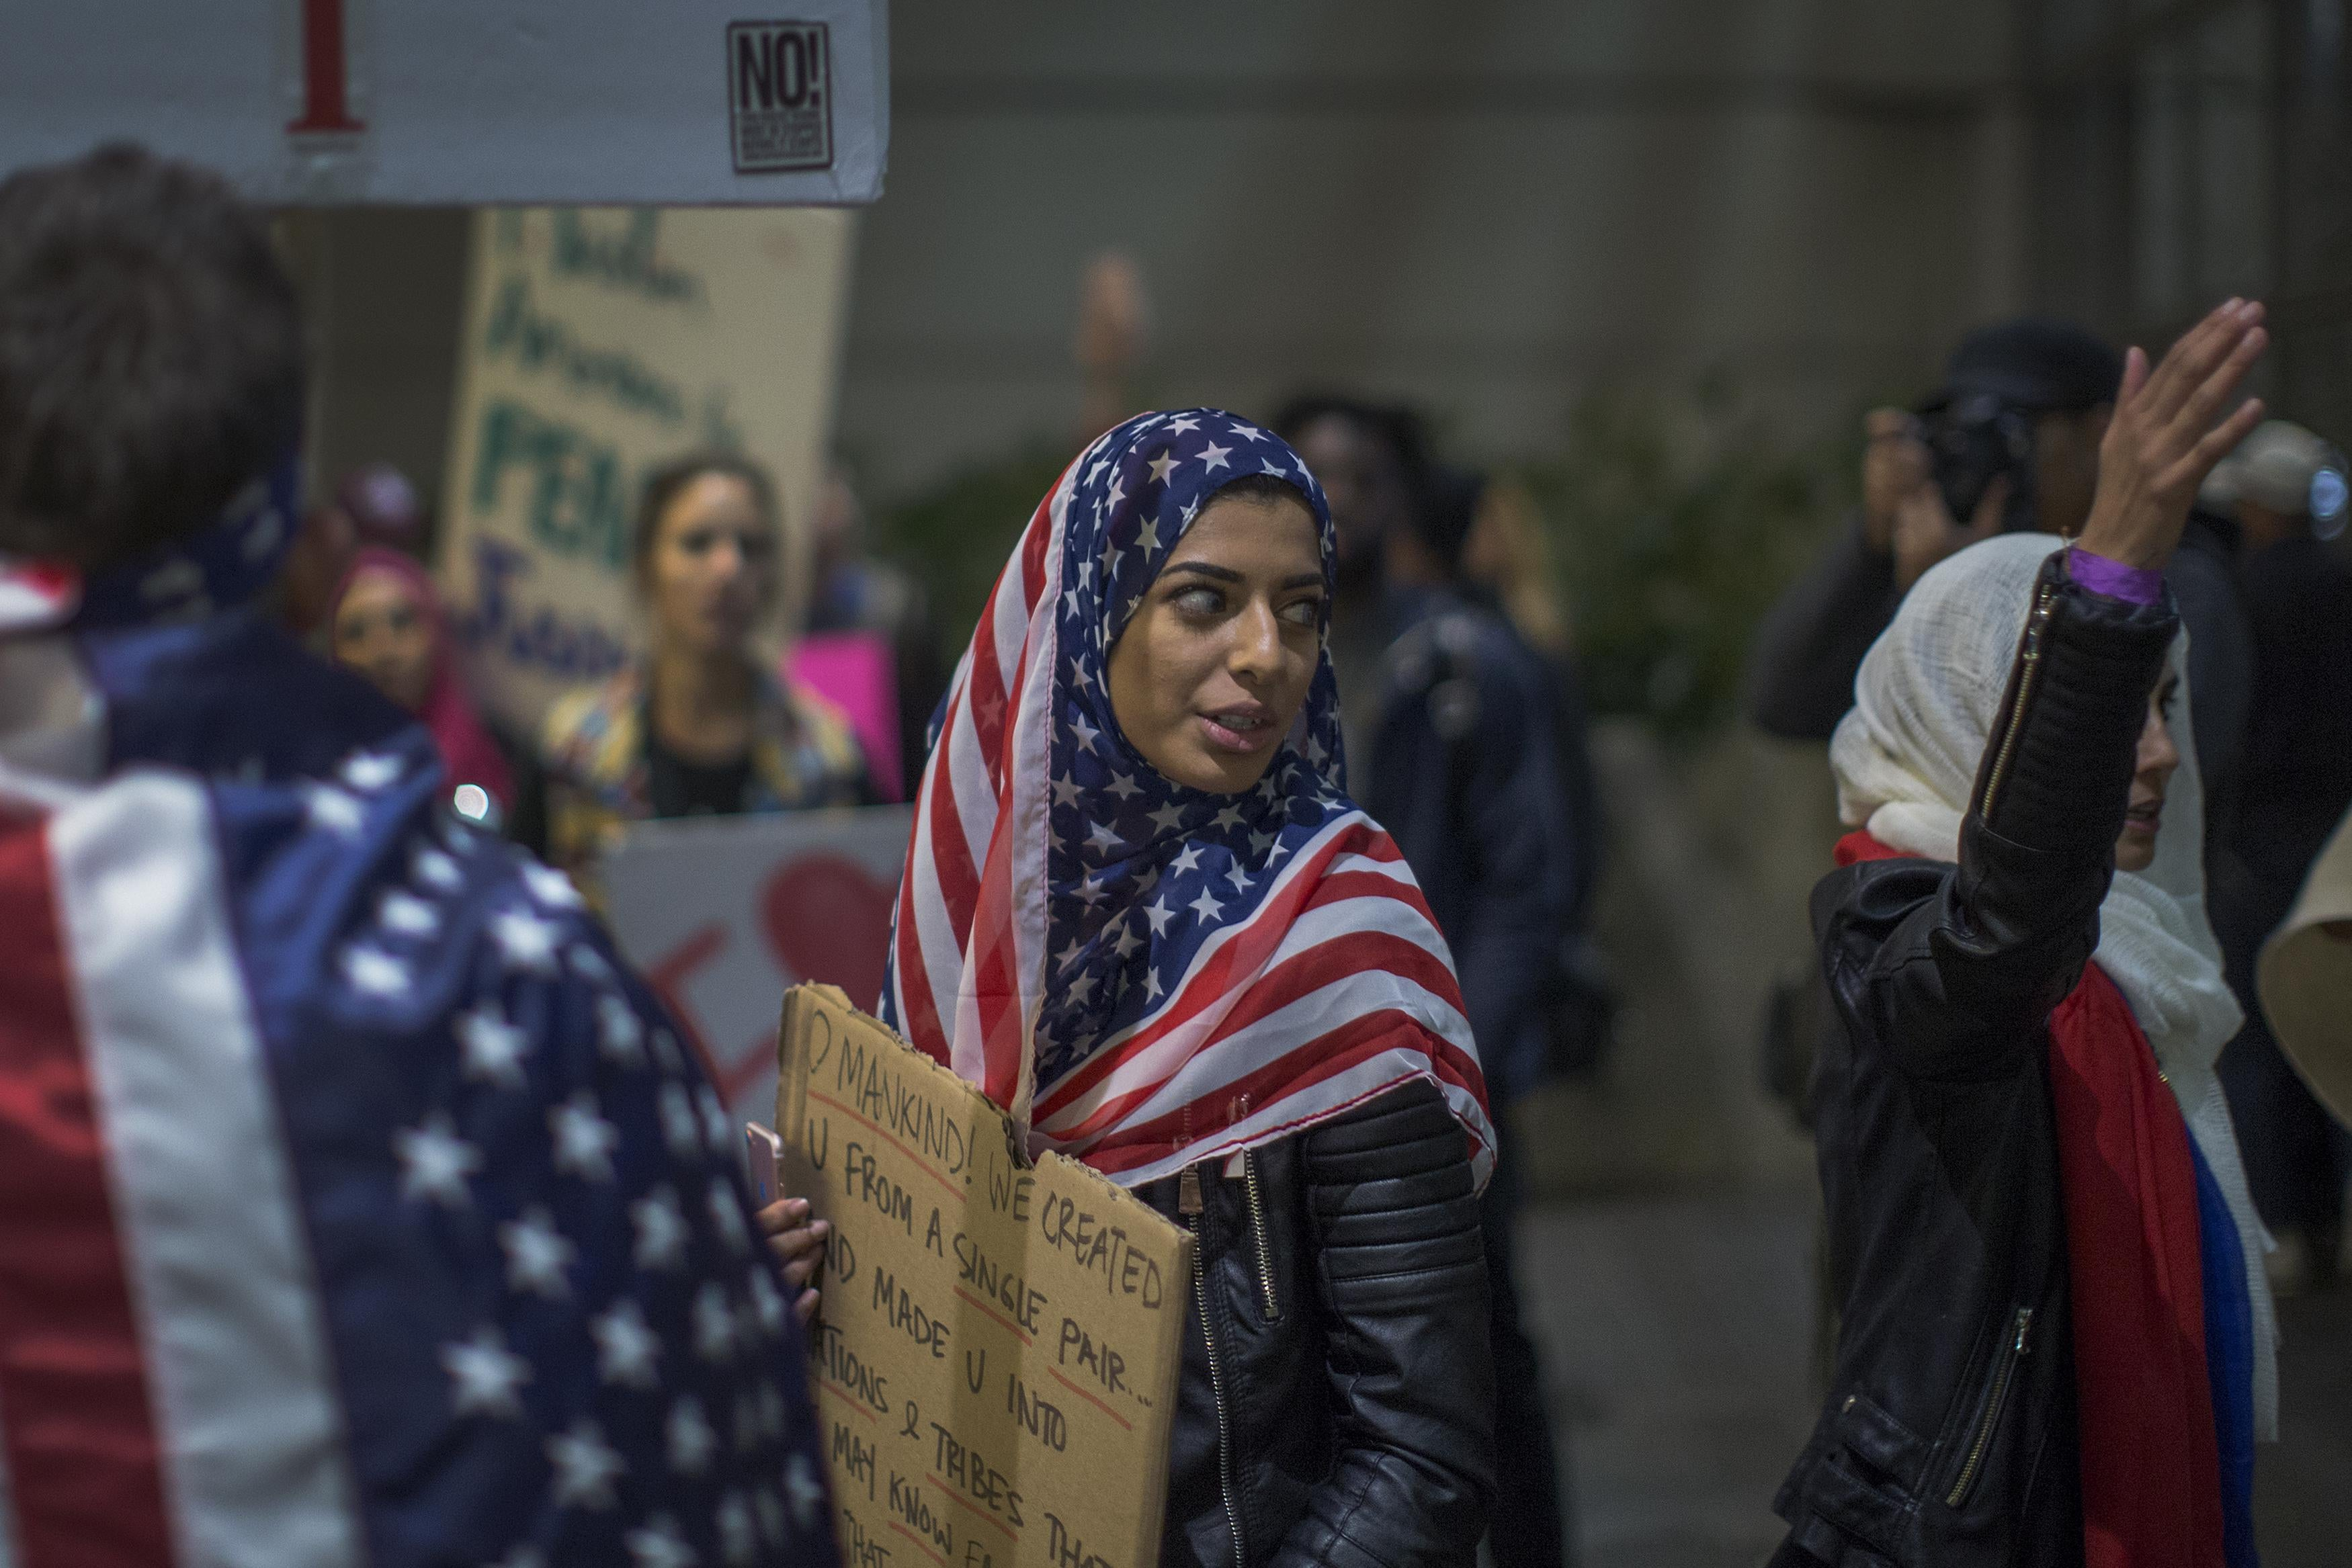 Demonstrators at Los Angeles International Airport march in opposition to the first Muslim Ban in February.